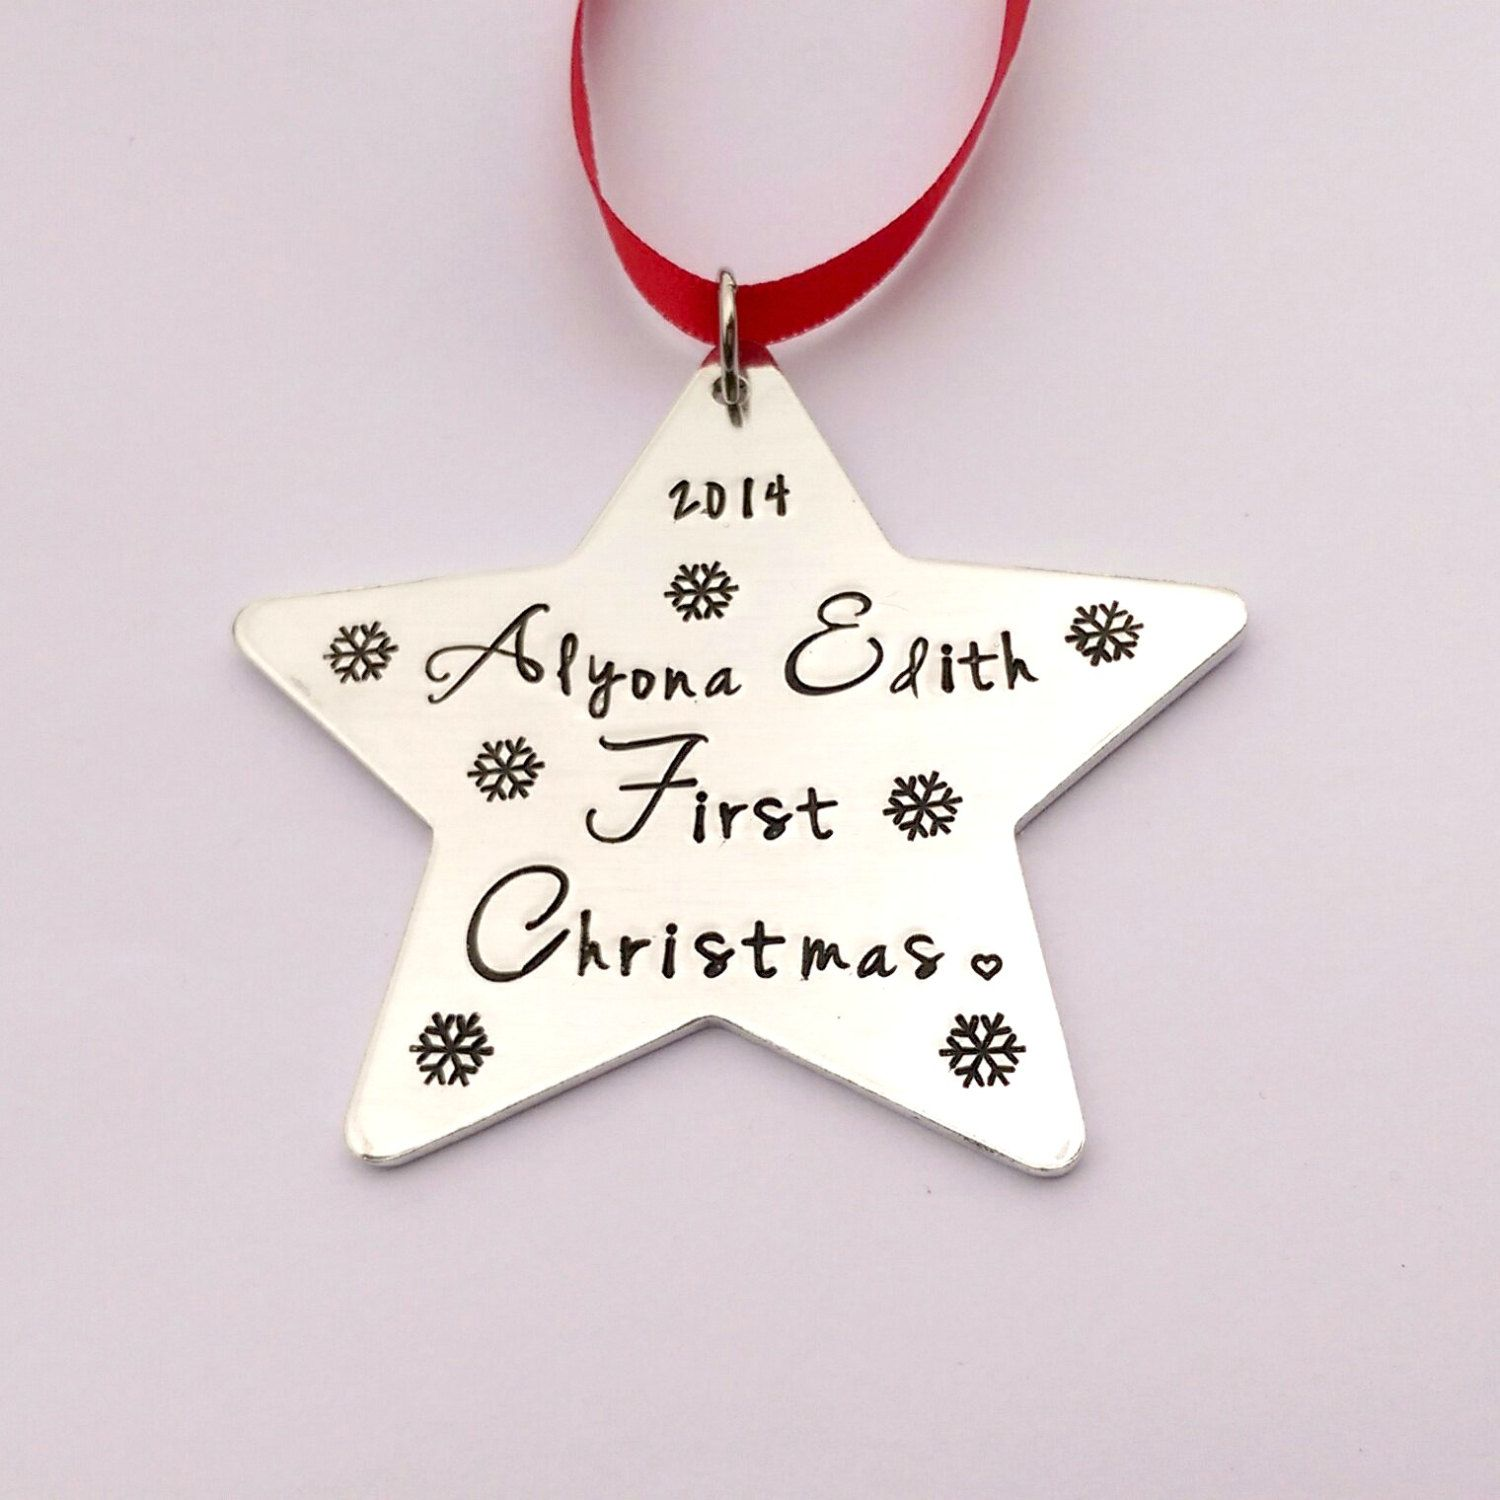 Babys First Christmas personalised tree decoration -  Personalized babys 1st christmas tree ornament - star name christmas tree decoration by EmsStampedJewellery on Etsy